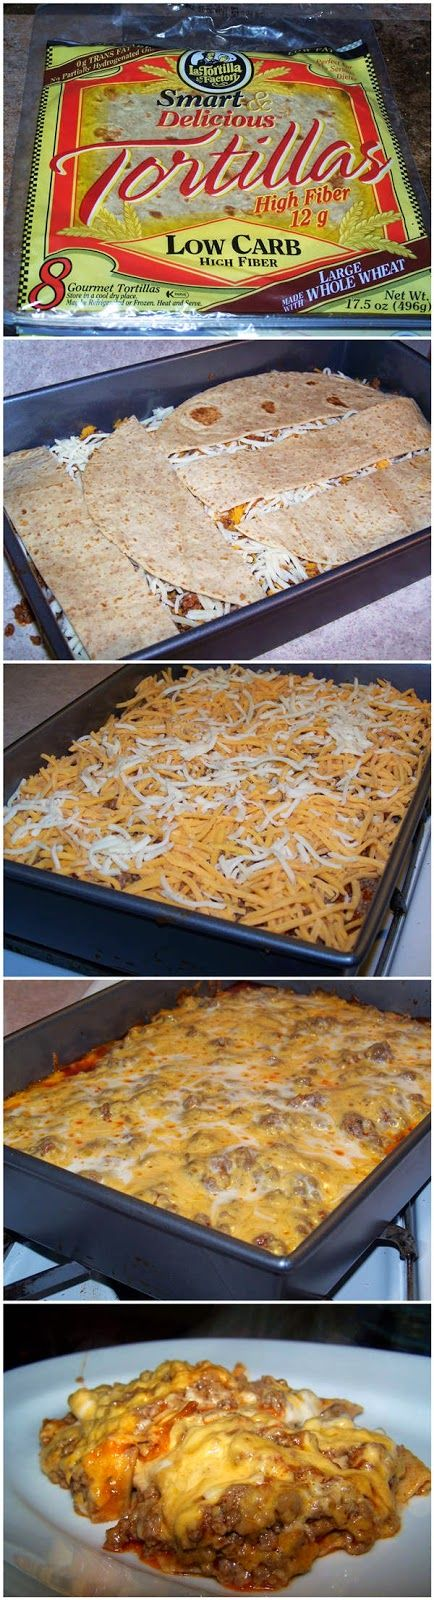 Beef Enchilada Pie - I would just use the gluten free tortillas! ;)